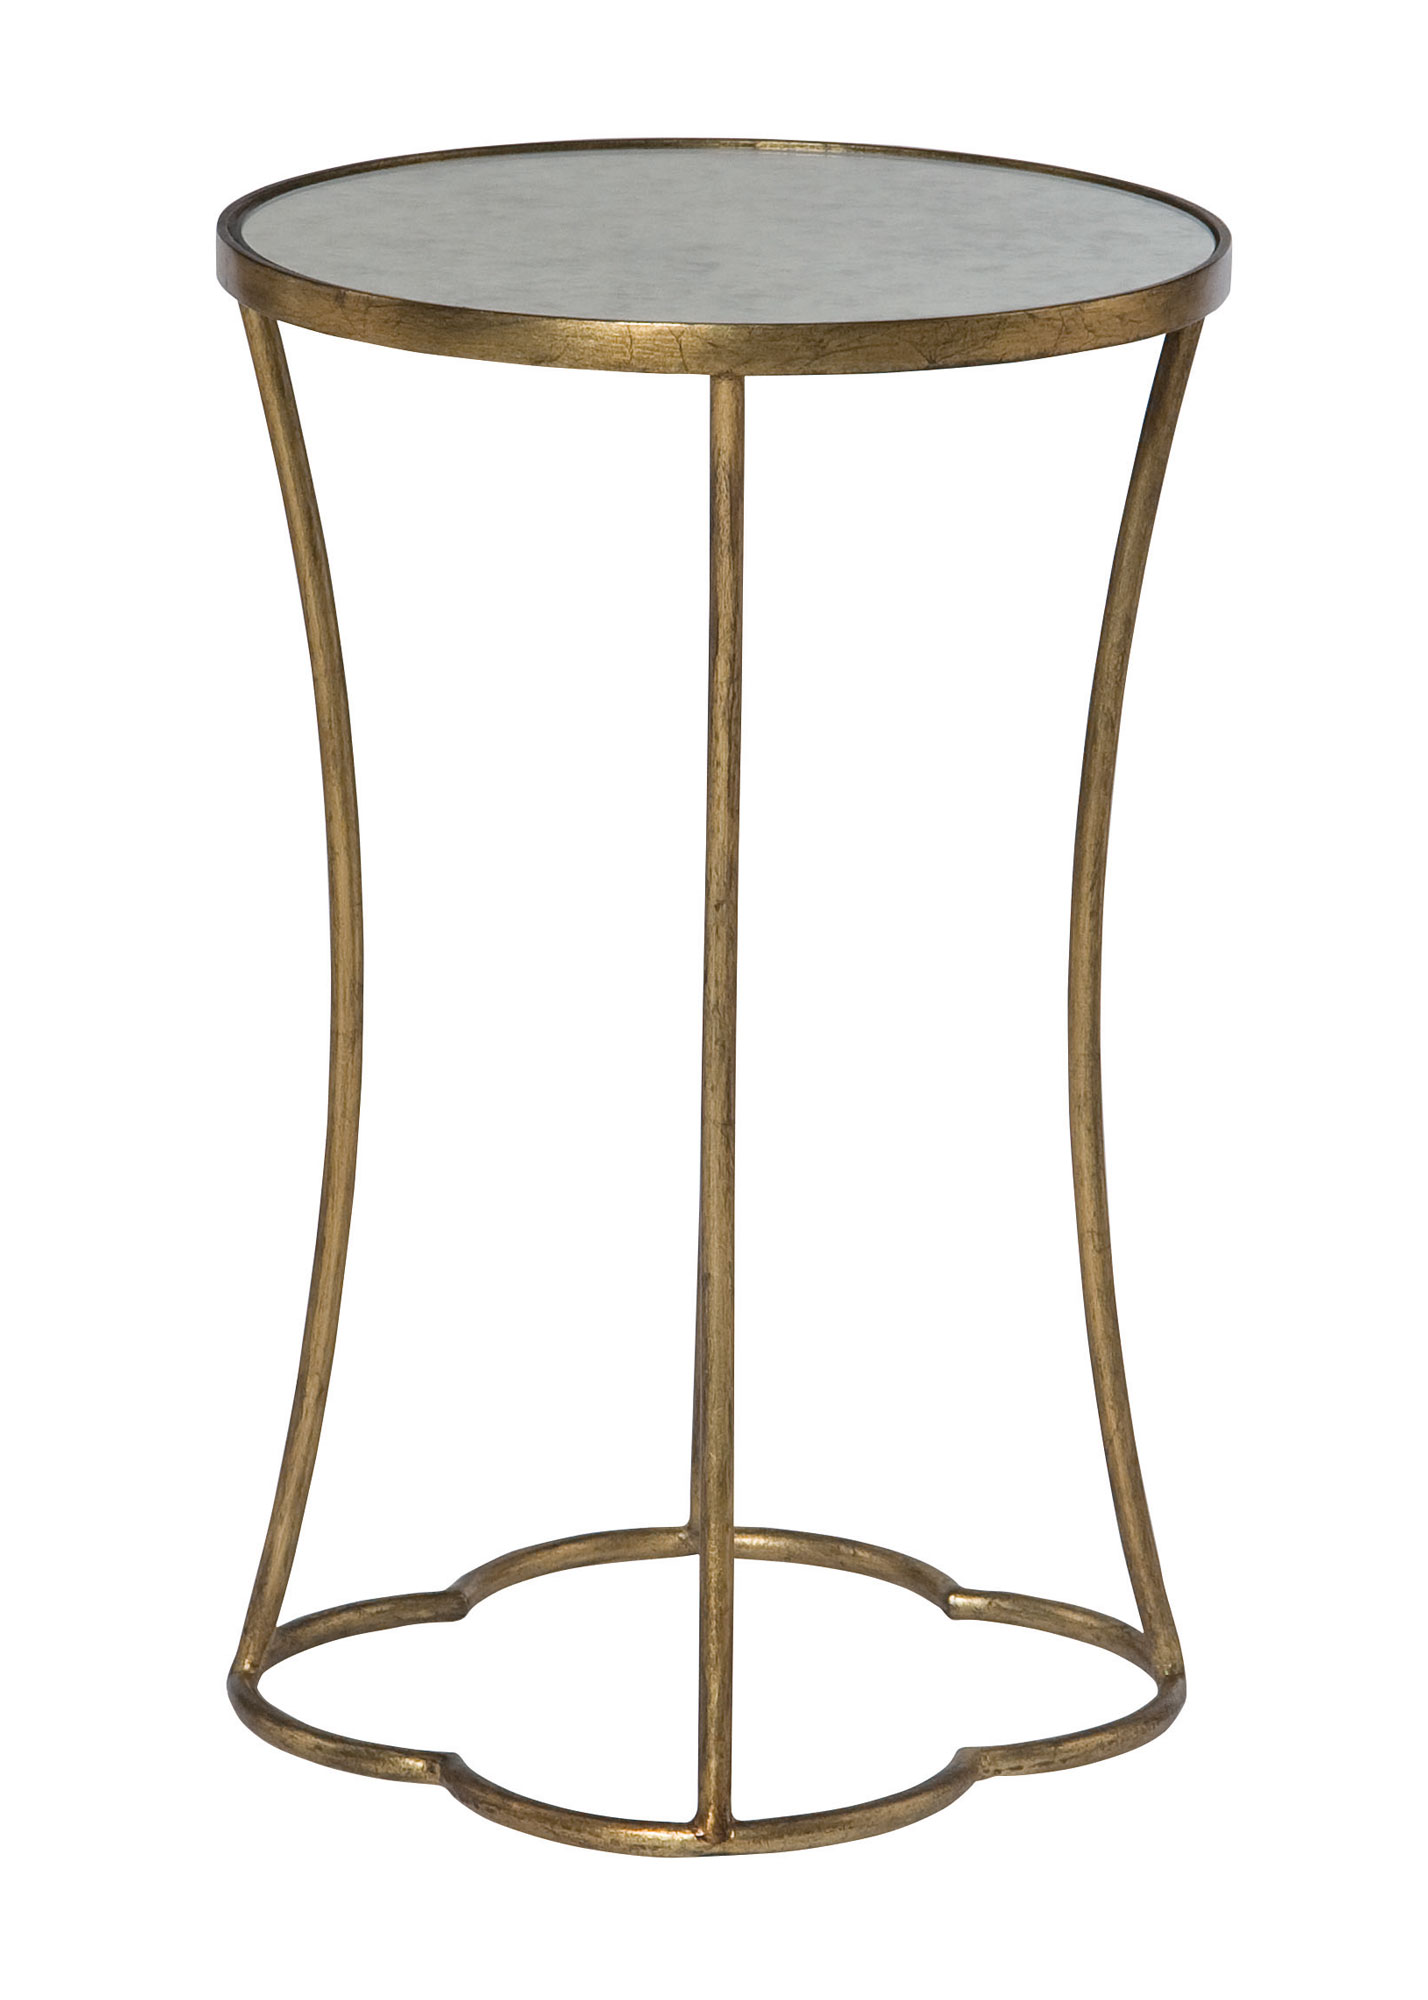 accent furniture tables urban home interior butler round table bernhardt coffee target buffet mirror top pie shaped end small contemporary lamps occasional chinese vase lamp